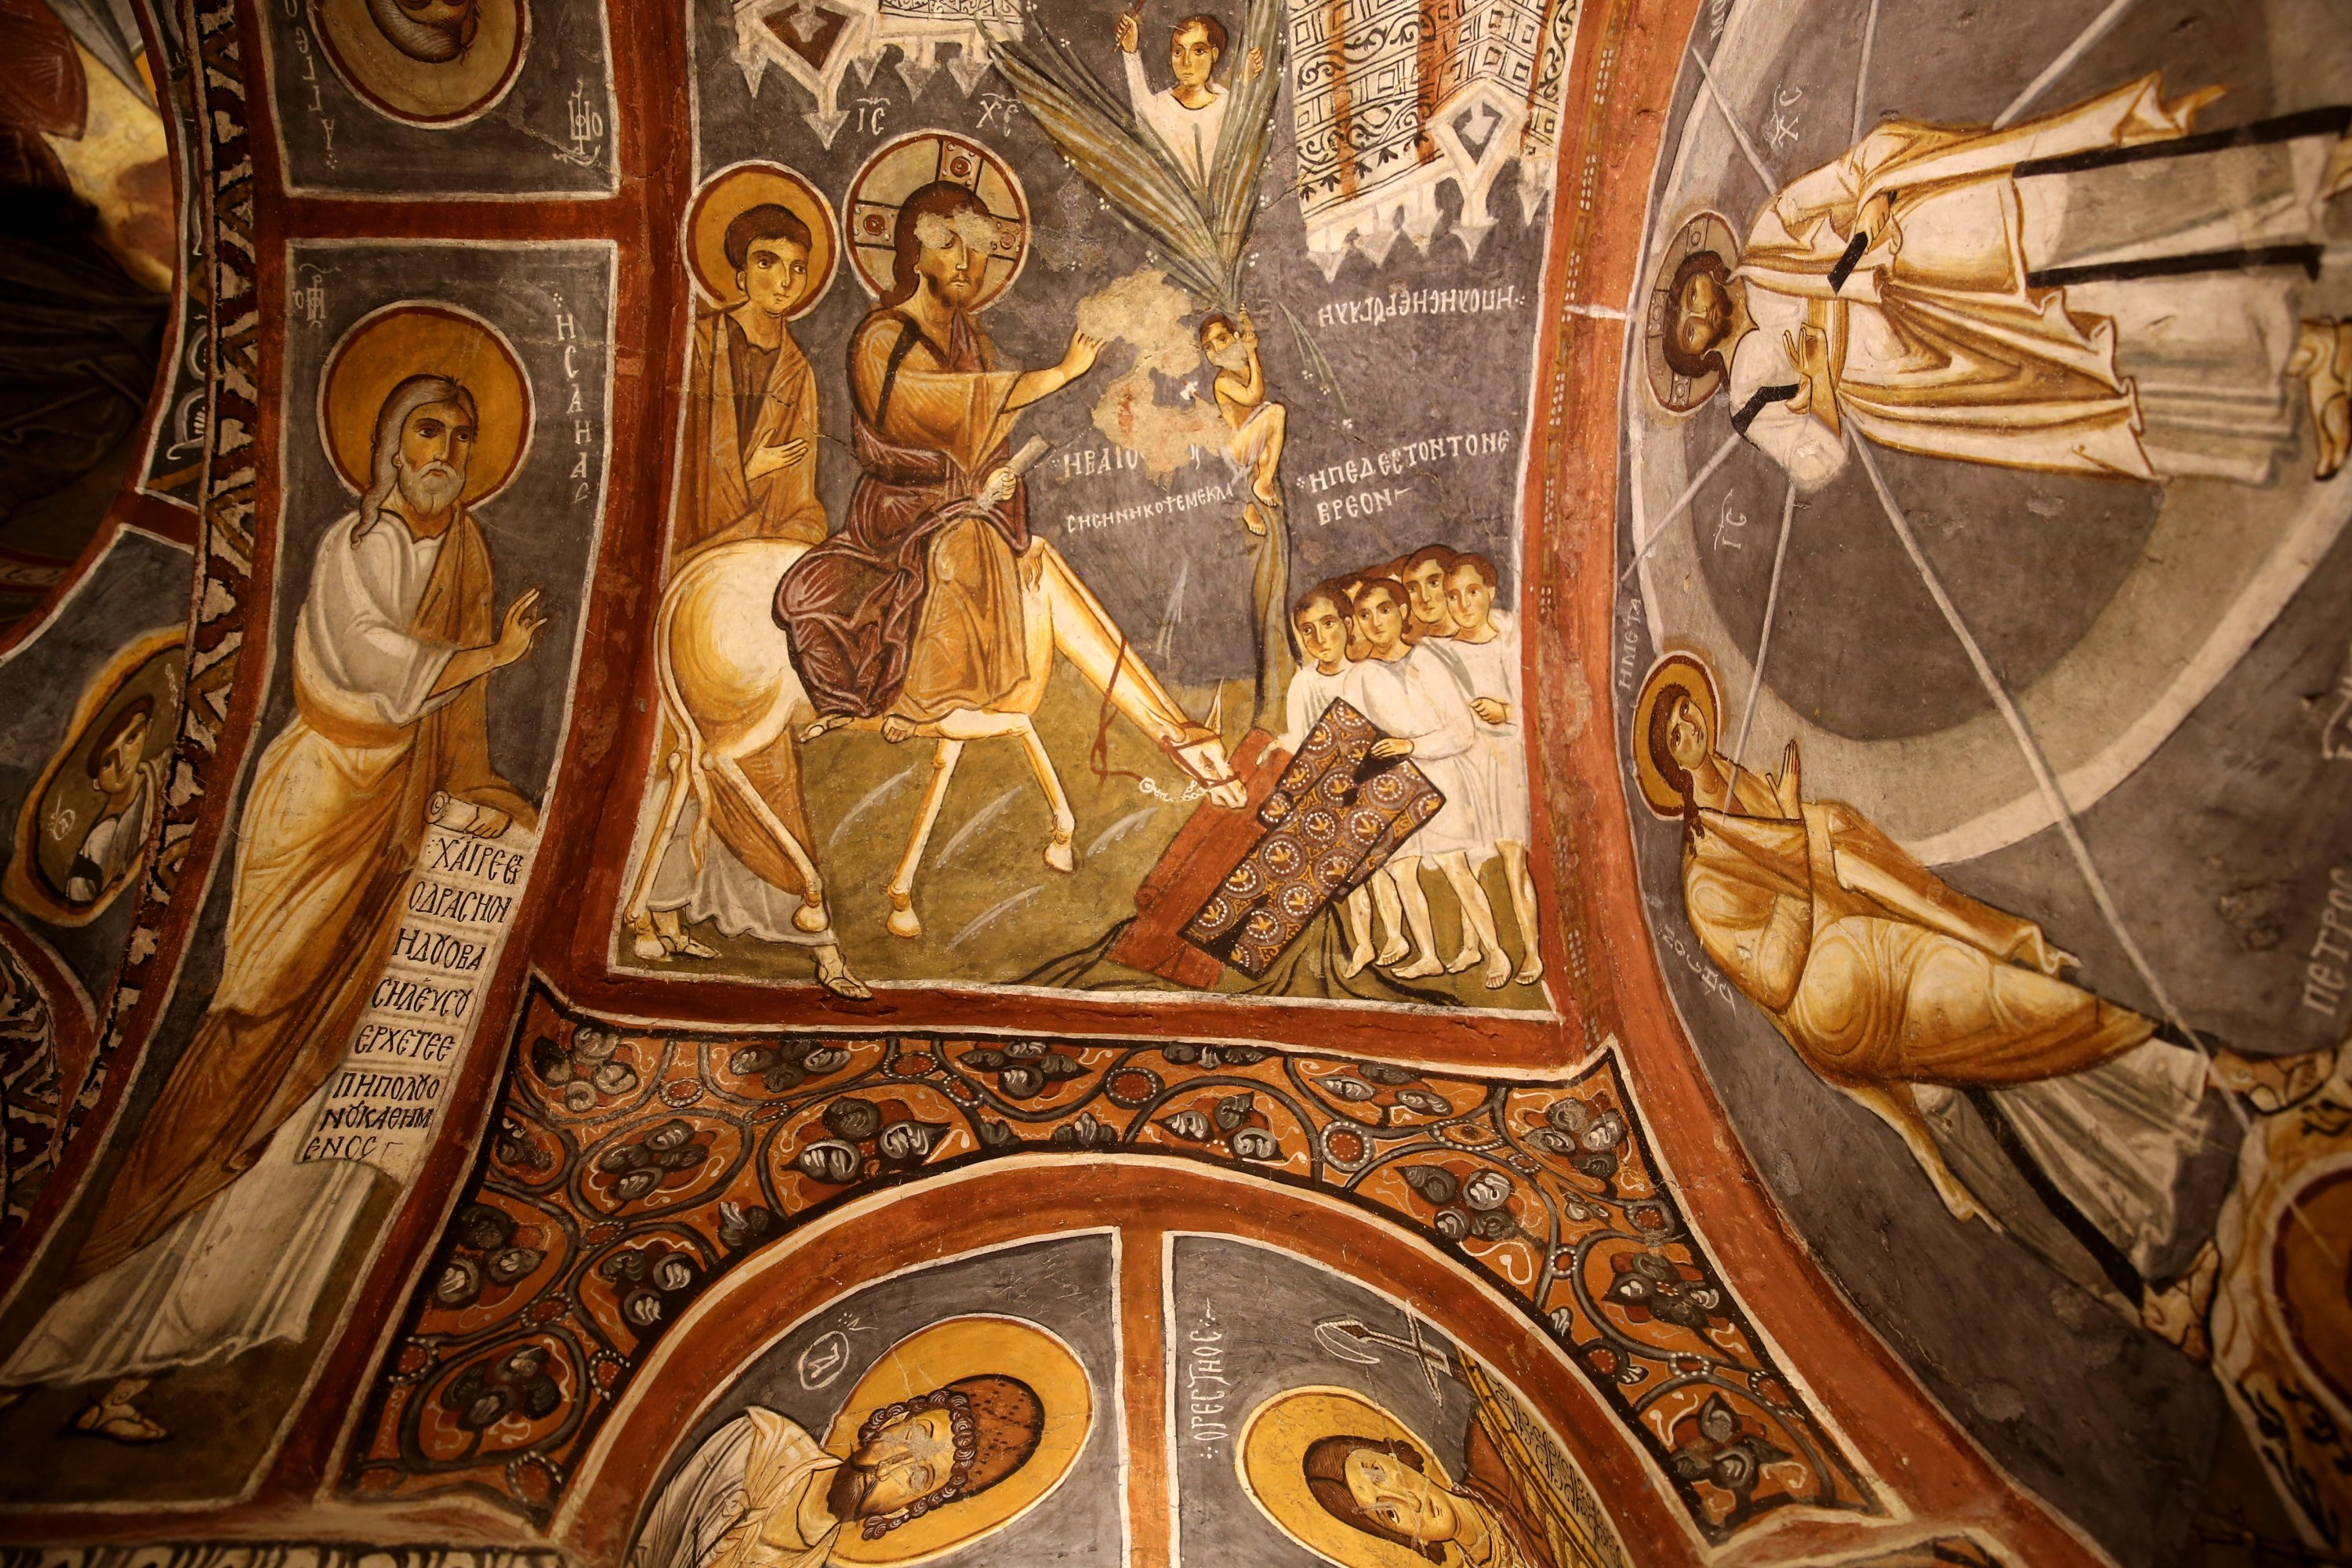 Frescoes at the church, Cappadocia, central Turkey, Aug. 3, 2020. (AA PHOTO)